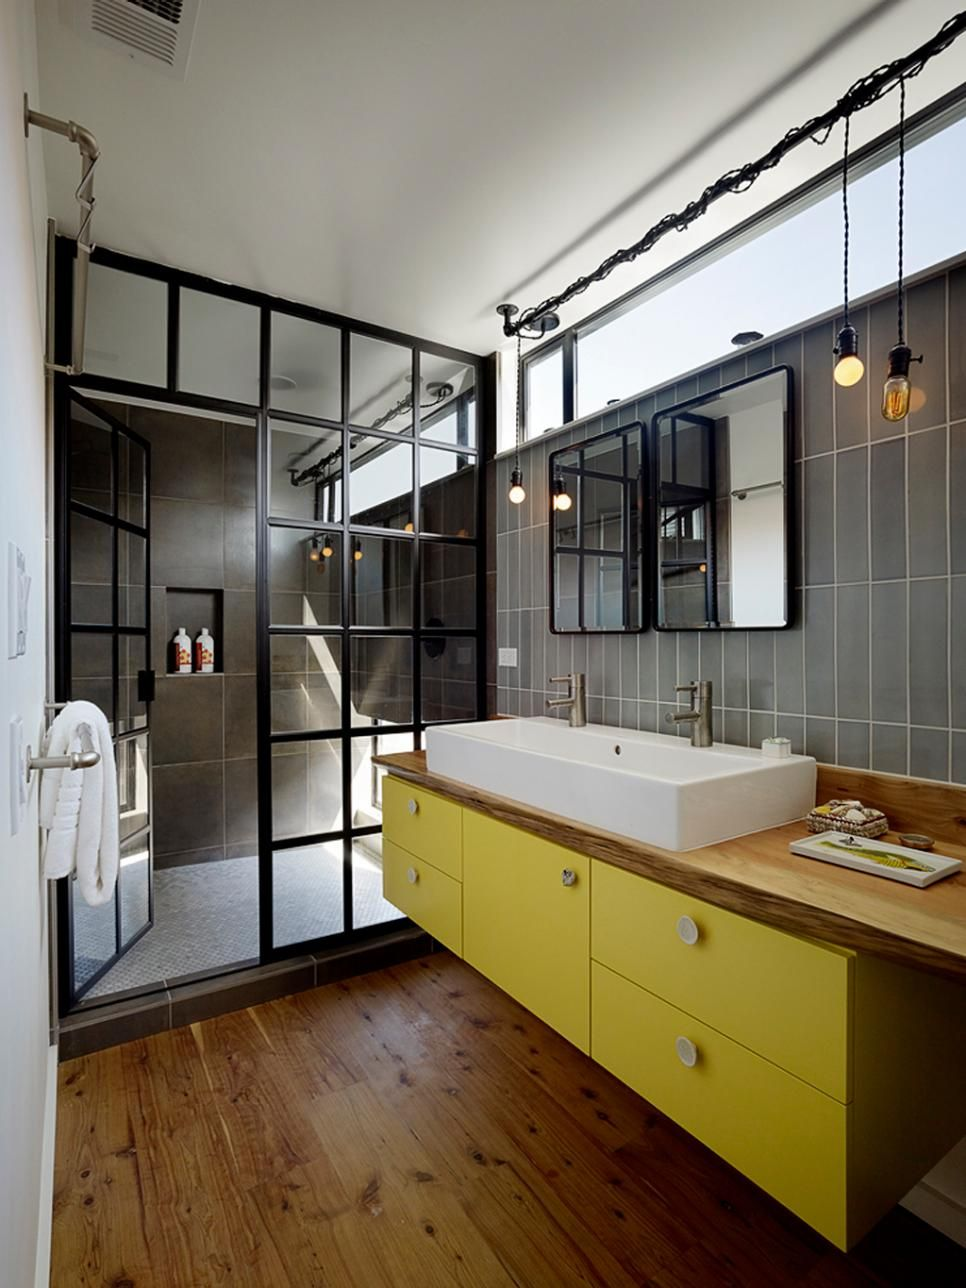 Interiors Windows colors and steam punk detailing make